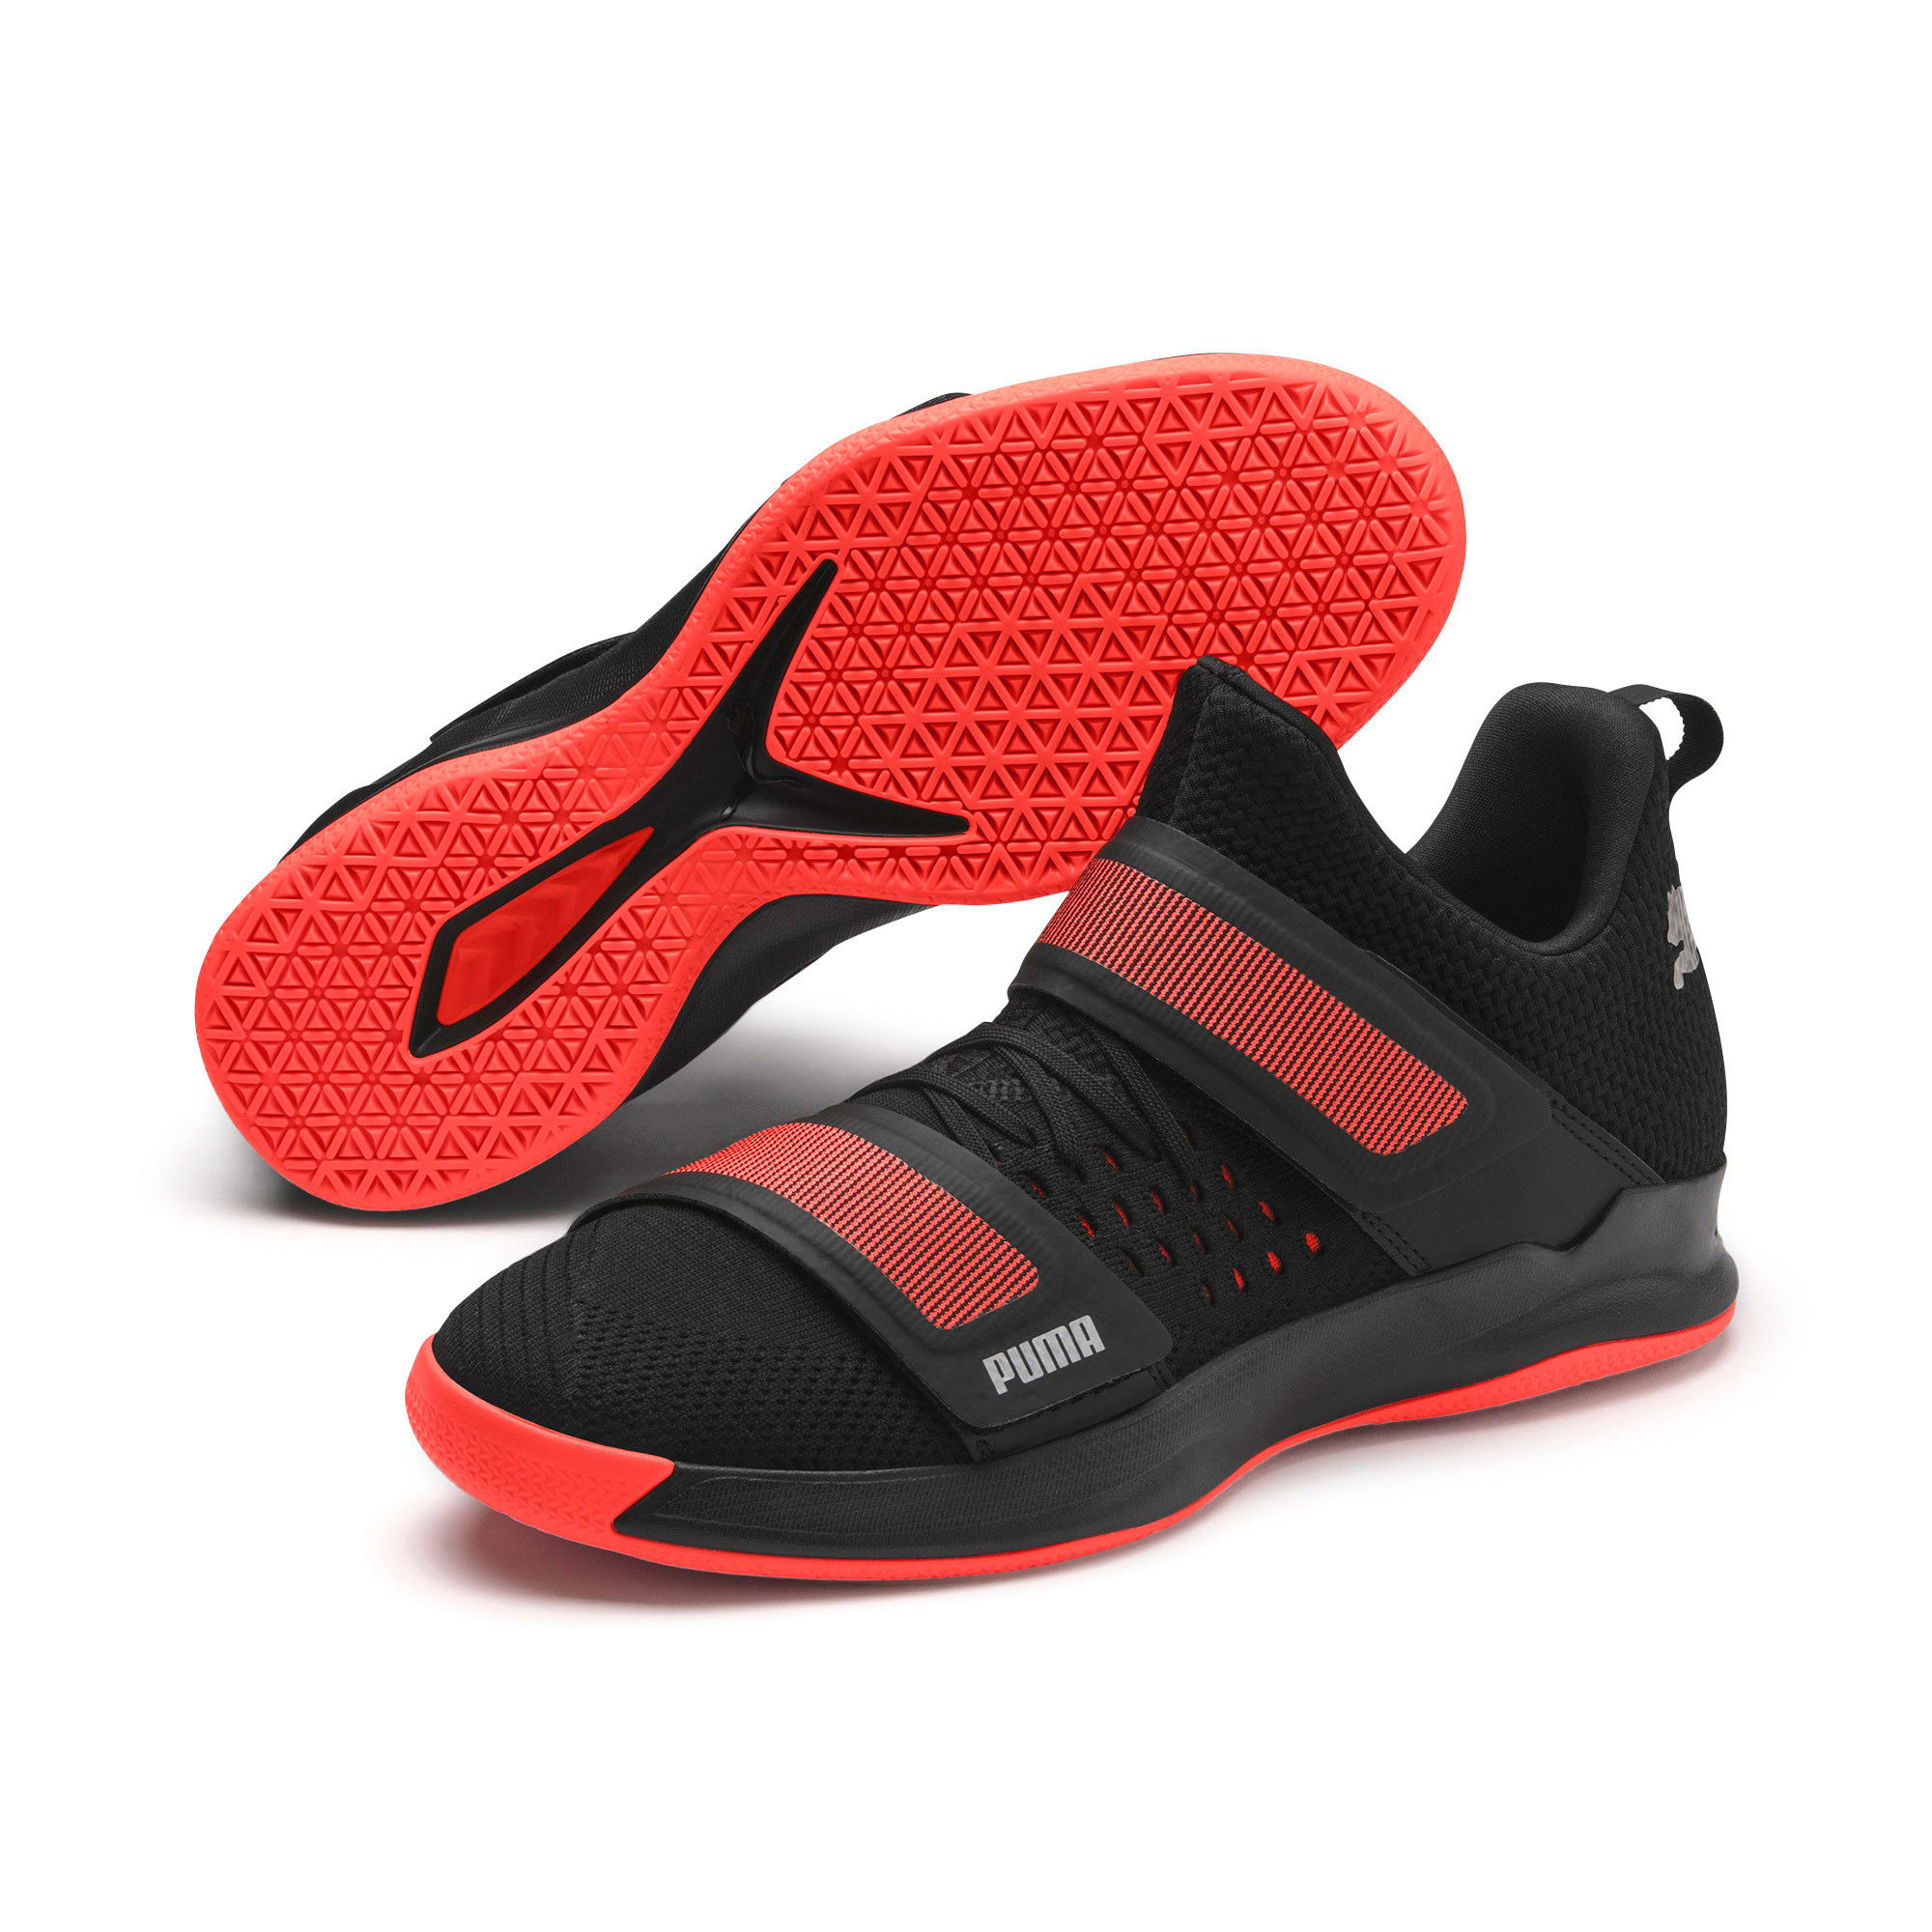 Thumbnail 3 of Basket Rise XT3 NETFIT, Puma Black-Silver-Nrgy Red, medium